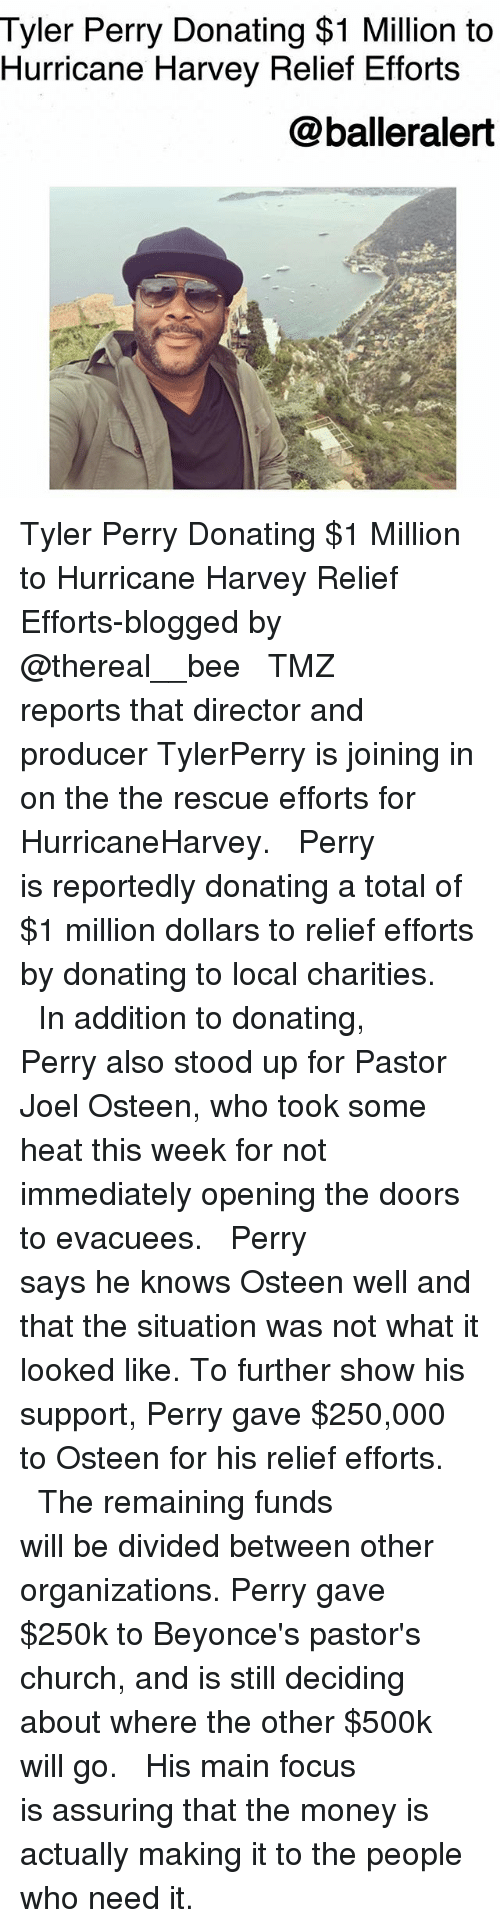 assuring: Tyler Perry Donating $1 Million to  Hurricane Harvey Relief Efforts  @balleralert Tyler Perry Donating $1 Million to Hurricane Harvey Relief Efforts-blogged by @thereal__bee ⠀⠀⠀⠀⠀⠀⠀⠀⠀ ⠀⠀ TMZ reports that director and producer TylerPerry is joining in on the the rescue efforts for HurricaneHarvey. ⠀⠀⠀⠀⠀⠀⠀⠀⠀ ⠀⠀ Perry is reportedly donating a total of $1 million dollars to relief efforts by donating to local charities. ⠀⠀⠀⠀⠀⠀⠀⠀⠀ ⠀⠀ In addition to donating, Perry also stood up for Pastor Joel Osteen, who took some heat this week for not immediately opening the doors to evacuees. ⠀⠀⠀⠀⠀⠀⠀⠀⠀ ⠀⠀ Perry says he knows Osteen well and that the situation was not what it looked like. To further show his support, Perry gave $250,000 to Osteen for his relief efforts. ⠀⠀⠀⠀⠀⠀⠀⠀⠀ ⠀⠀ The remaining funds will be divided between other organizations. Perry gave $250k to Beyonce's pastor's church, and is still deciding about where the other $500k will go. ⠀⠀⠀⠀⠀⠀⠀⠀⠀ ⠀⠀ His main focus is assuring that the money is actually making it to the people who need it.